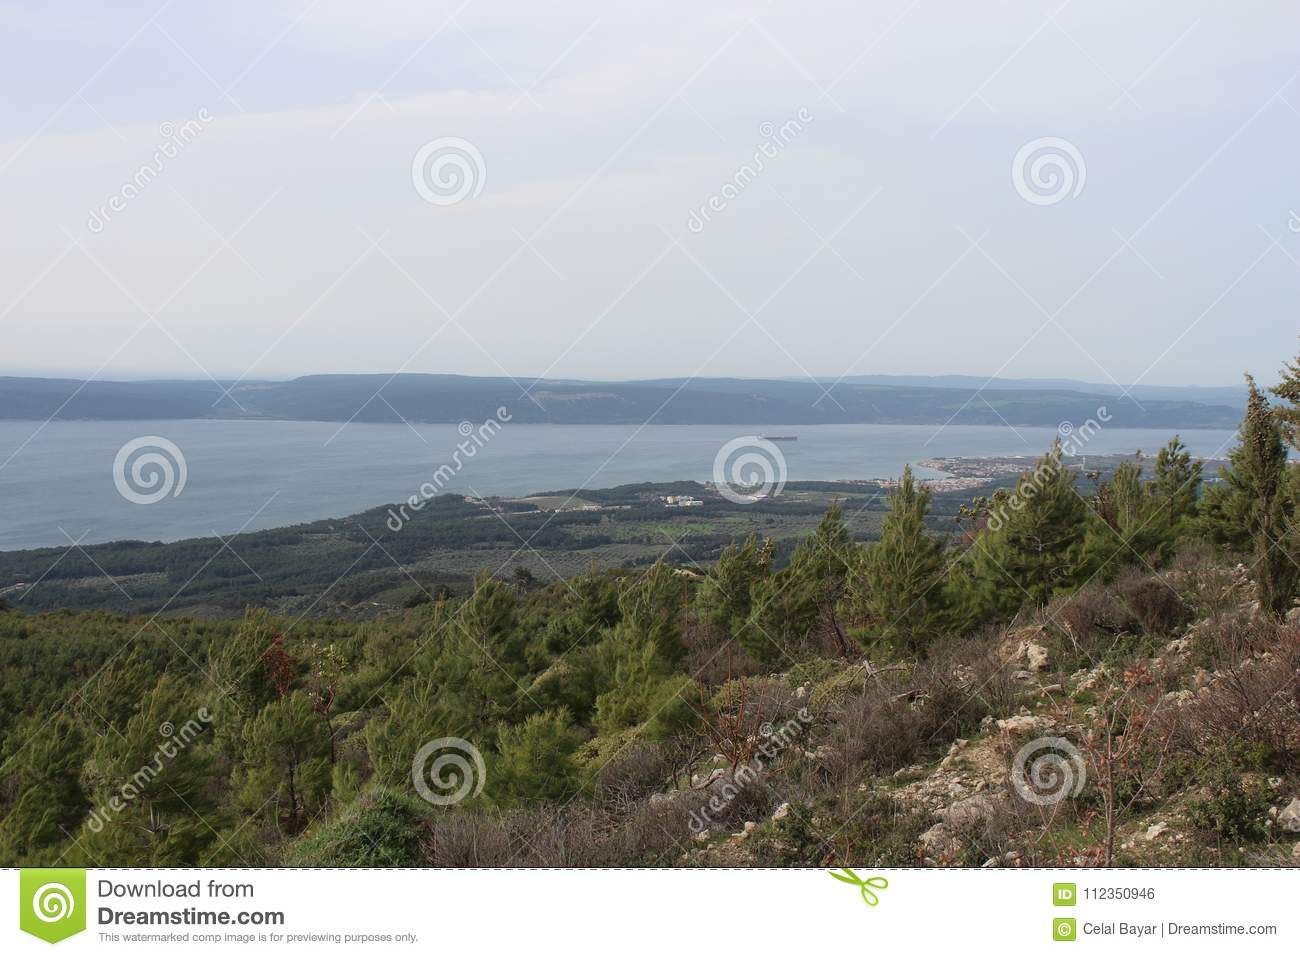 Download A Beautiful Day In The Forest And Sea Stock Photo - Image of gallipoli, martyrdom: 112350946